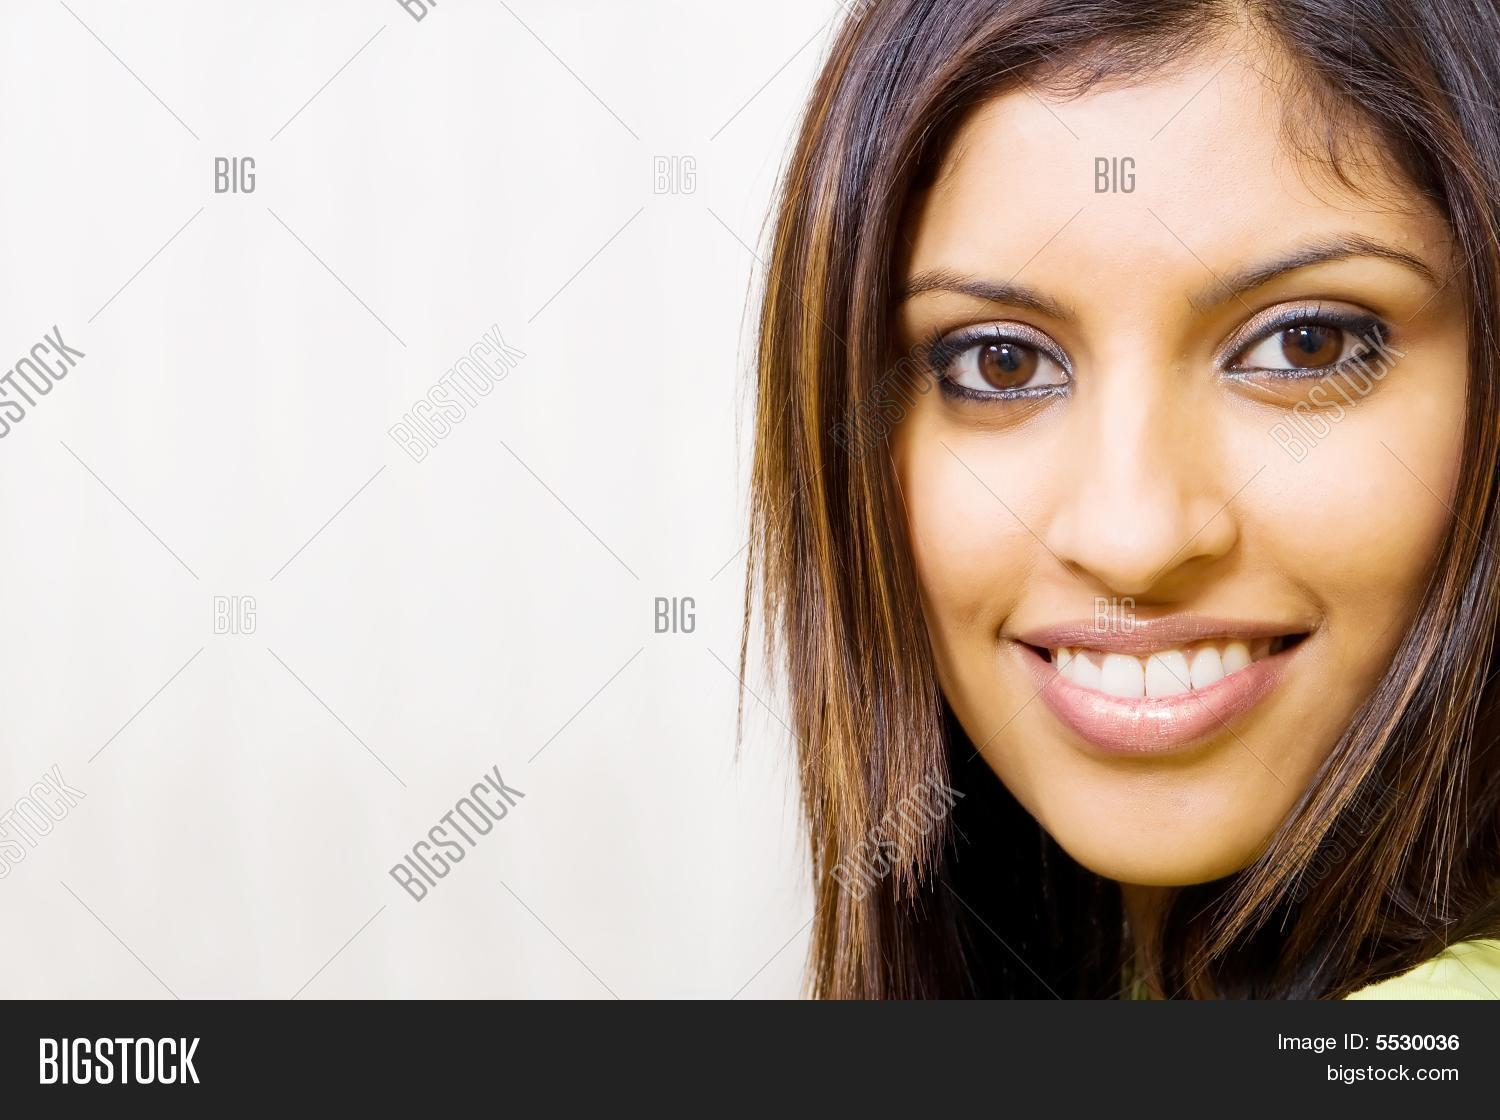 big prairie hindu single women Nymagcom daily intelligencer vulture the cut grub street and in big indian it's become second nature for women like us to straddle the two dating.